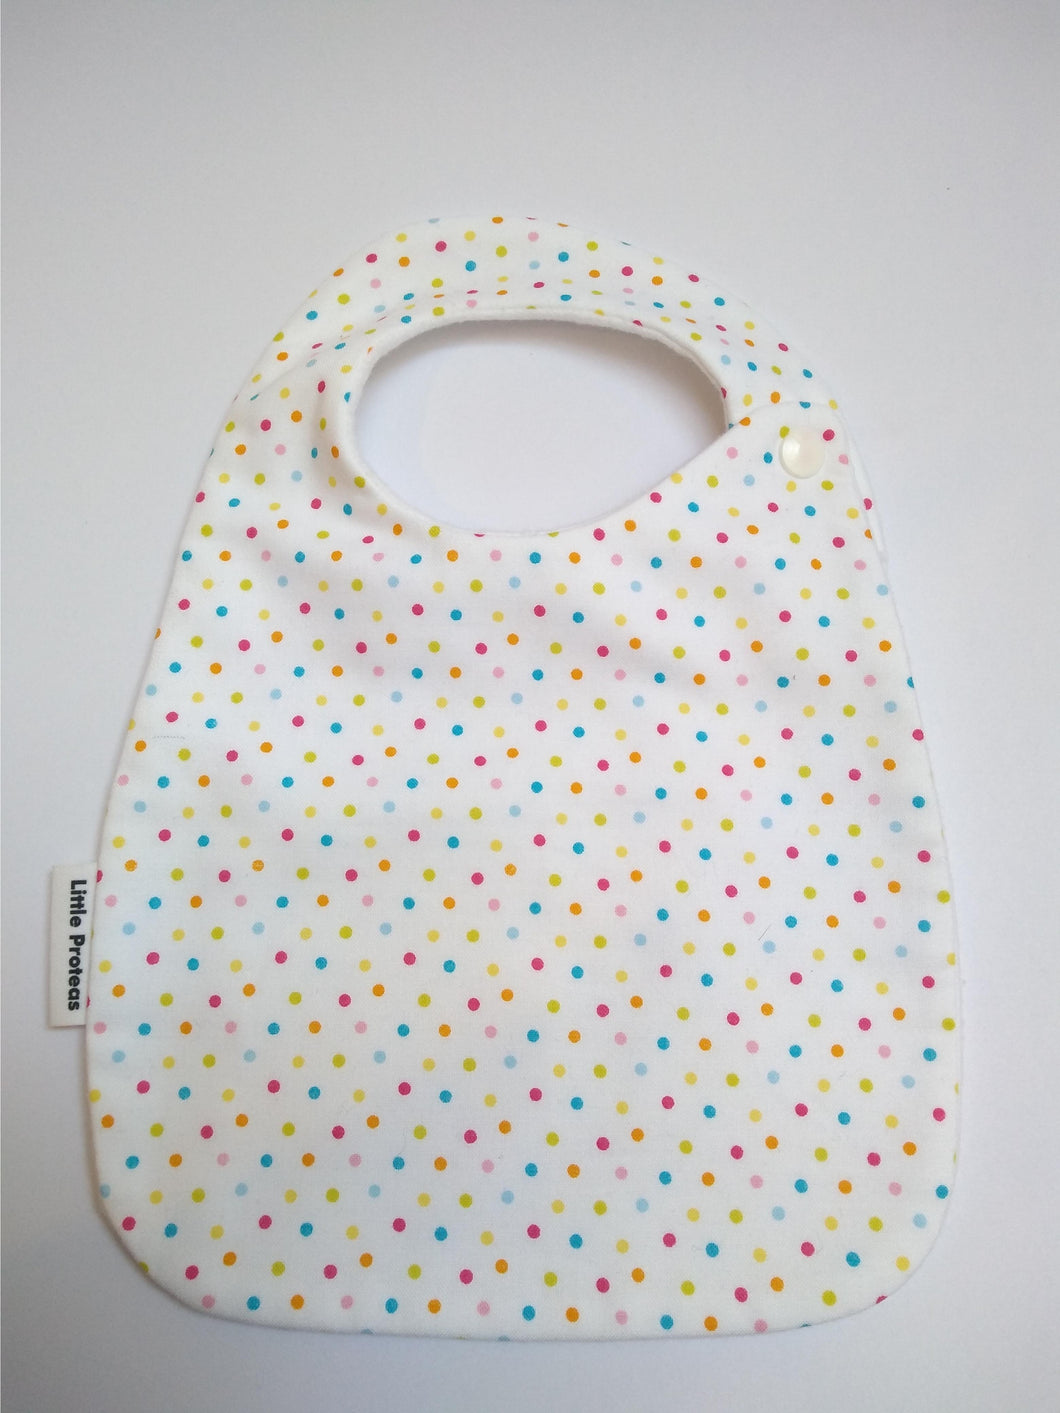 Hundreds and Thousands Dots Bib